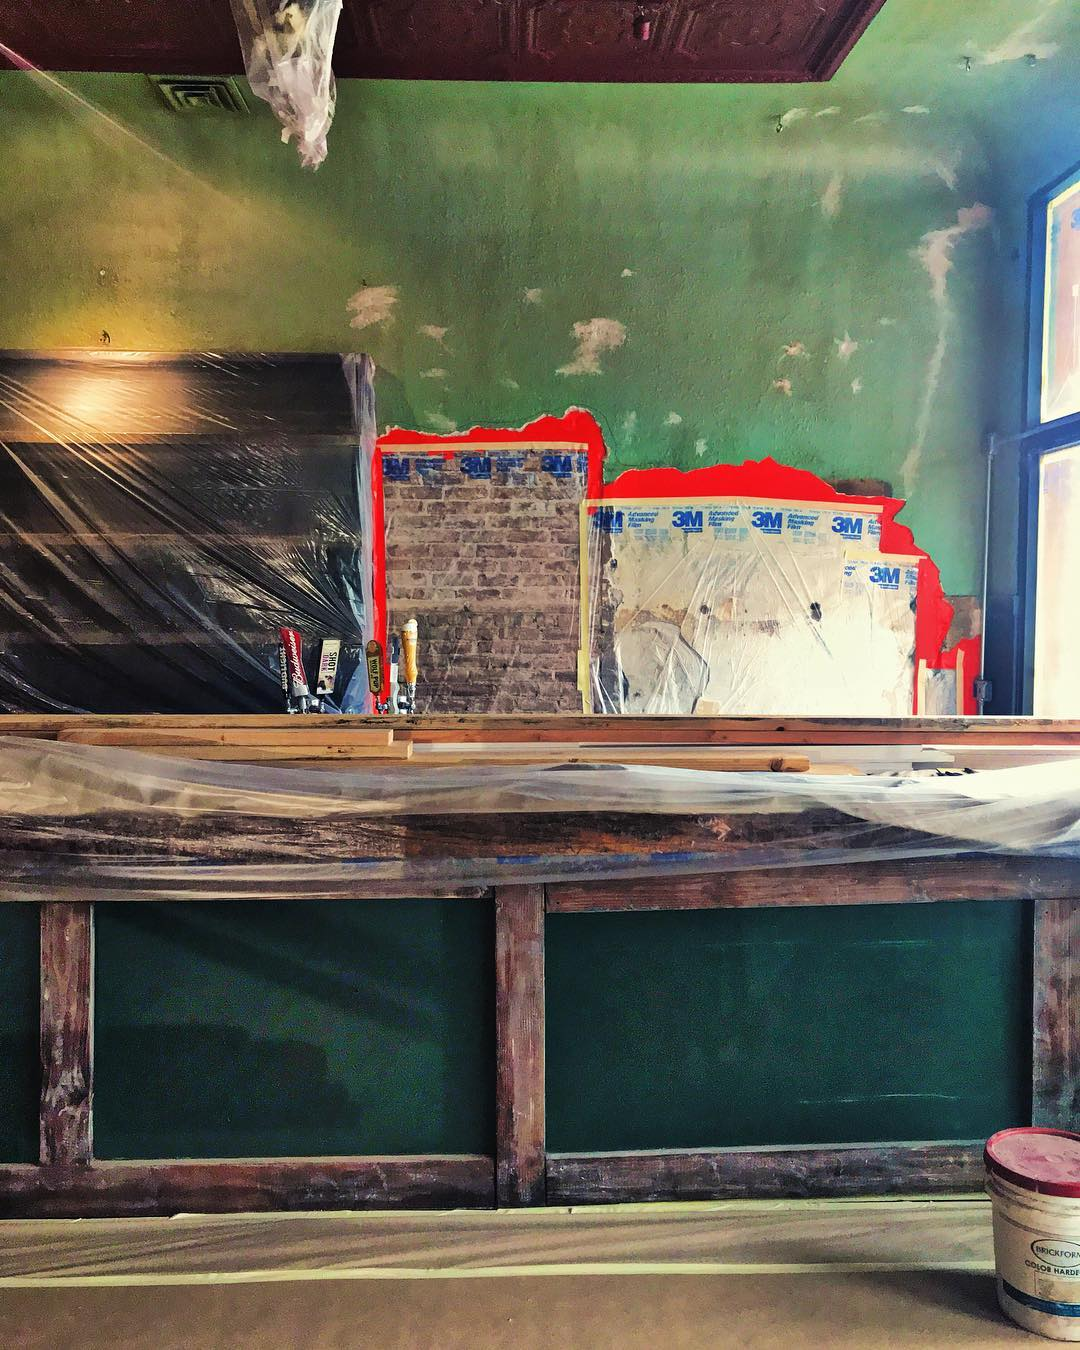 We are ready for paint in the bigger room at the restaurant! Lots of cleaning up and moving pieces and restoring all the history in this beautiful building - I can't wait to see the difference the PAINT is going to make this afternoon!%0A.jpg